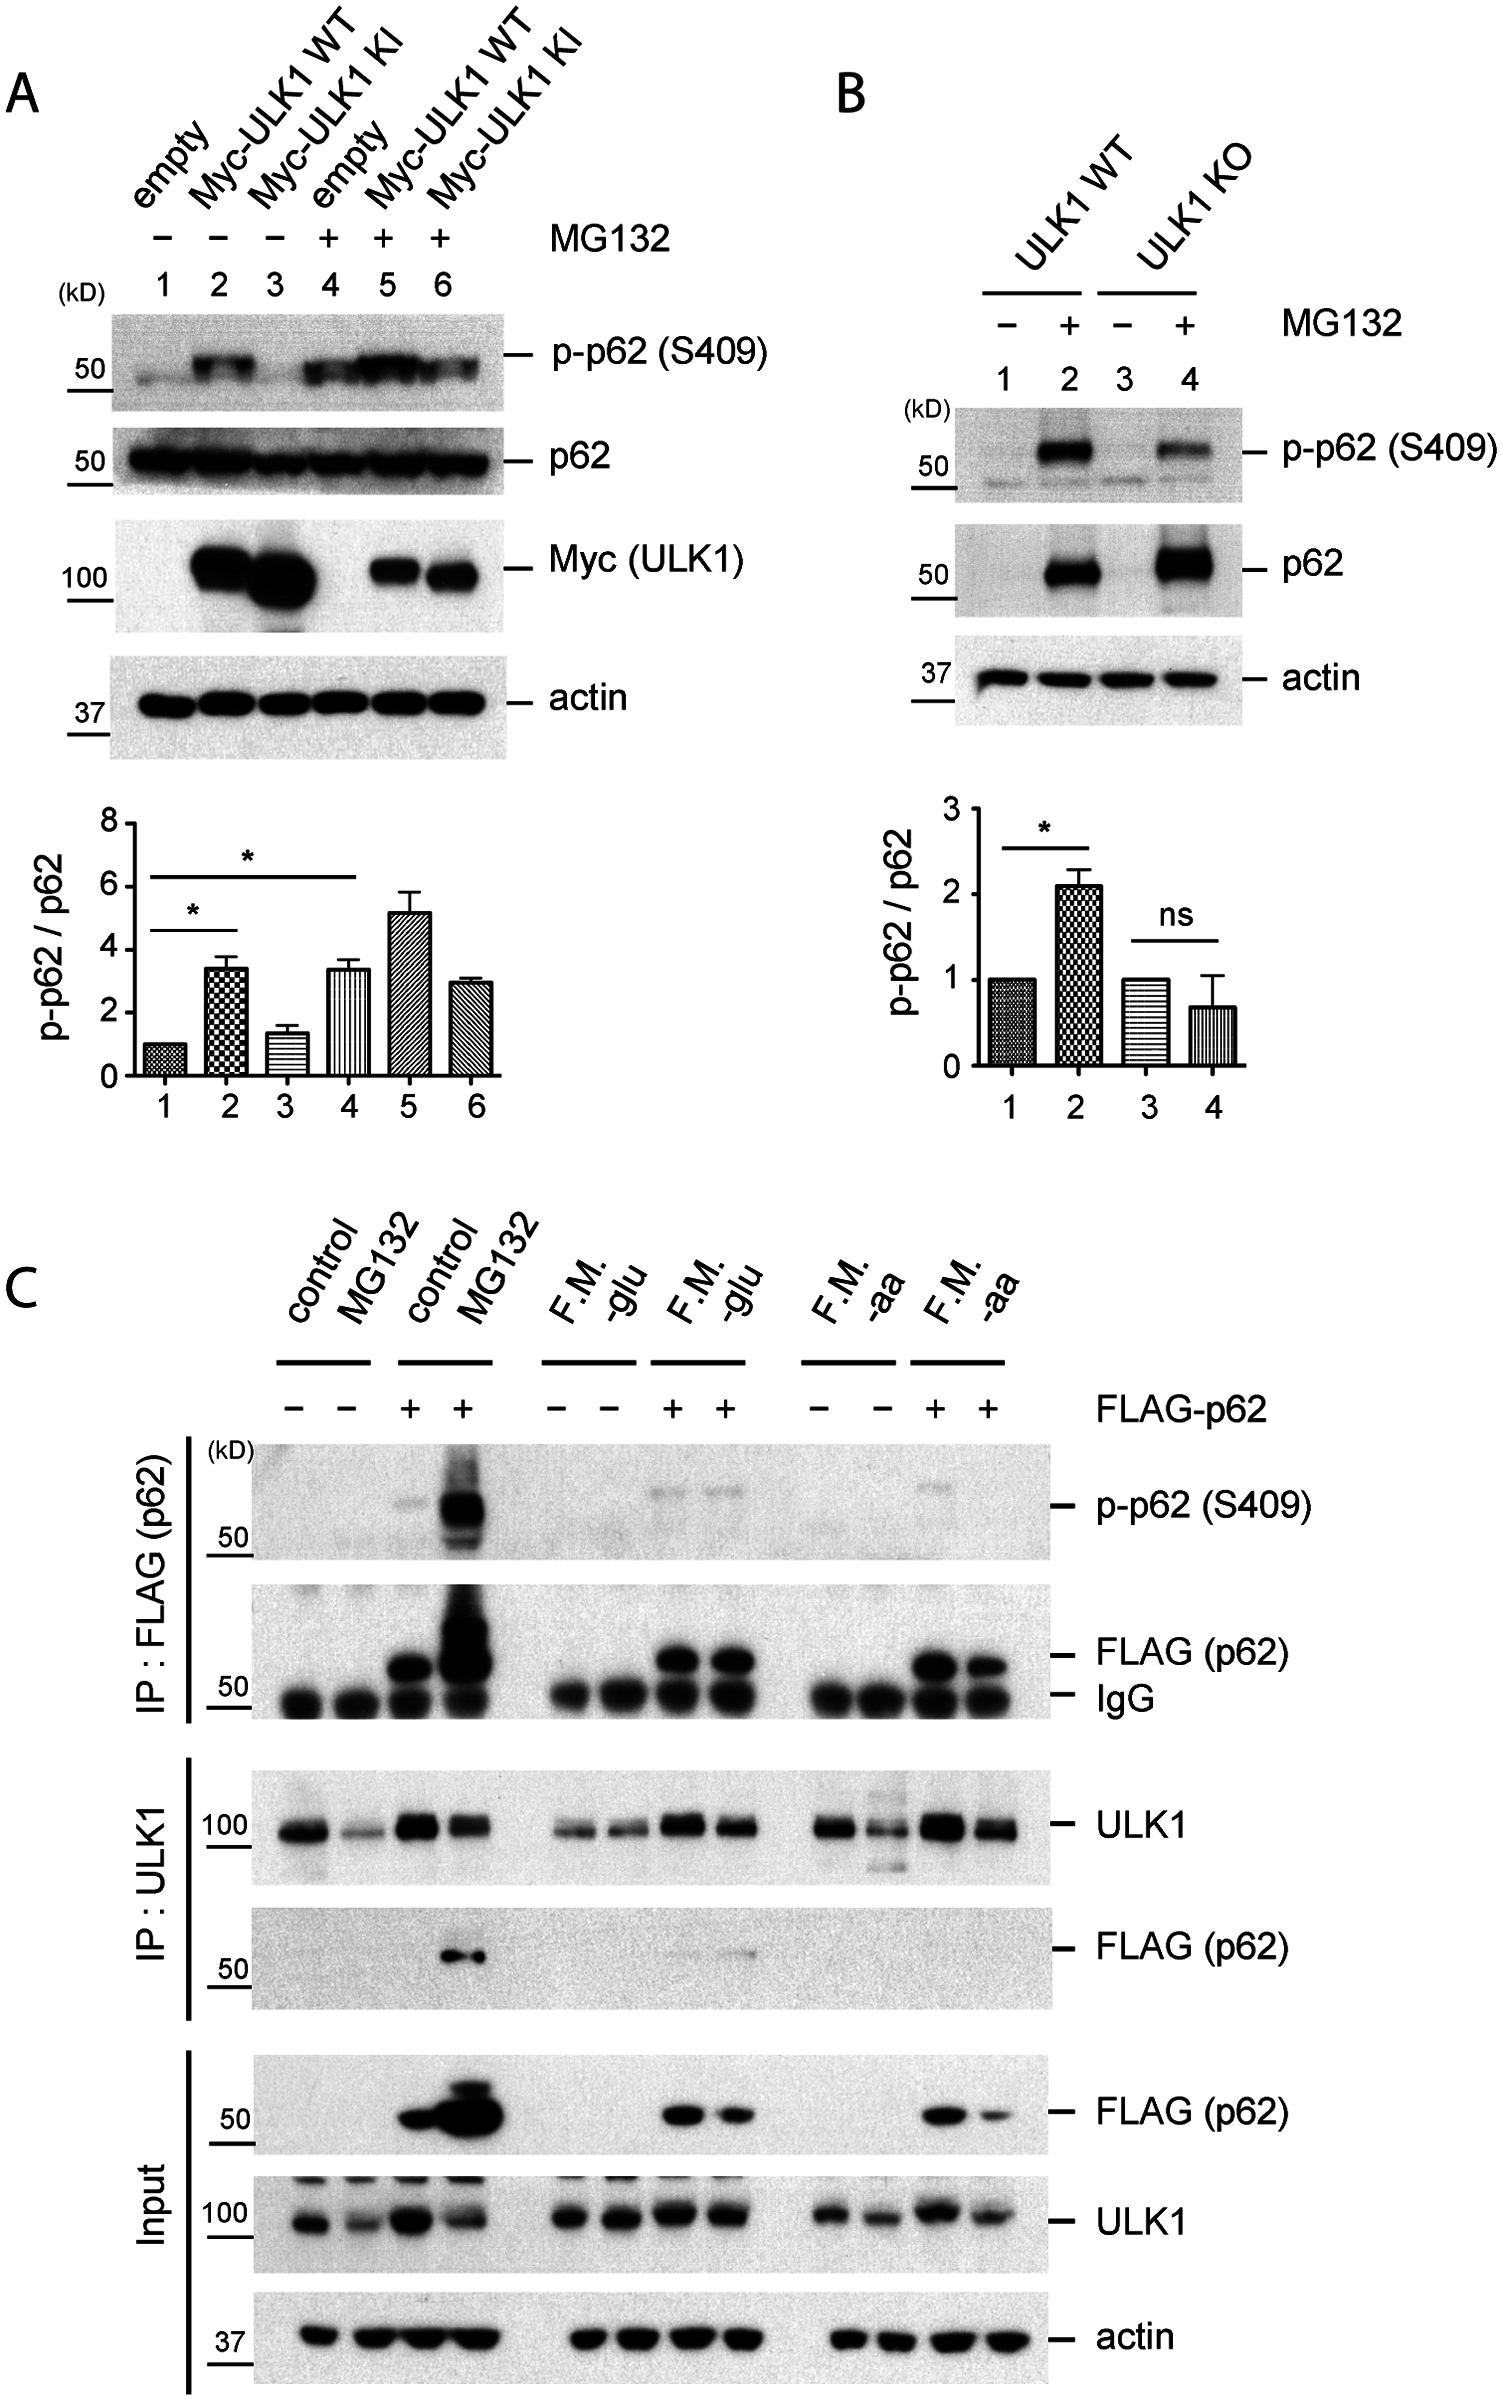 Phosphorylation of p62 at S409 is enhanced upon proteasome inhibition.